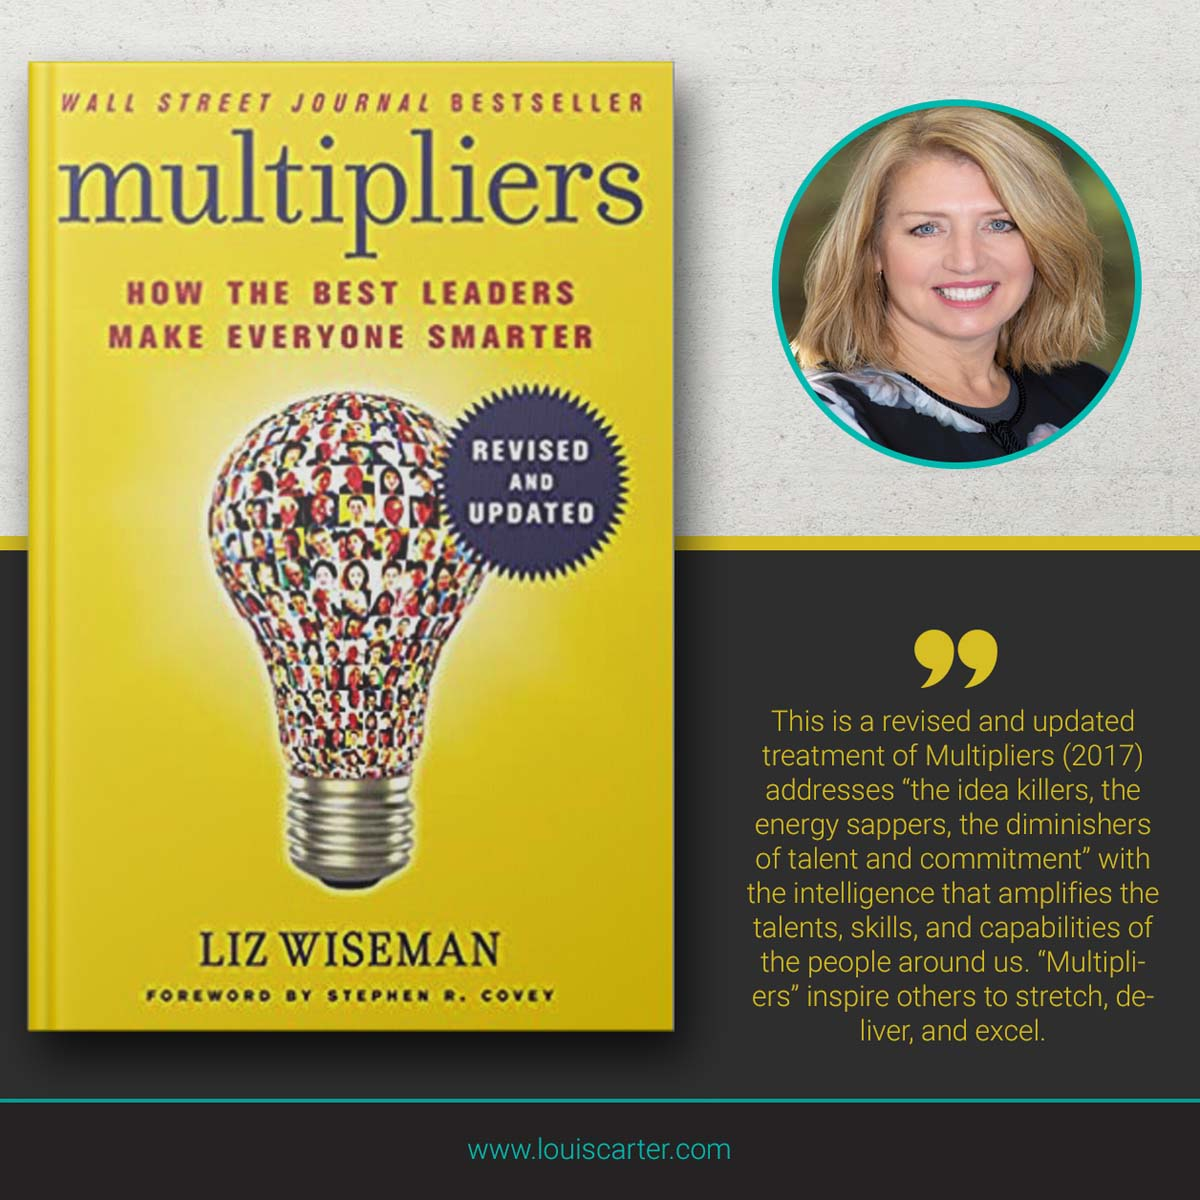 Picture of Multipliers best books on leadership by Liz Wiseman.